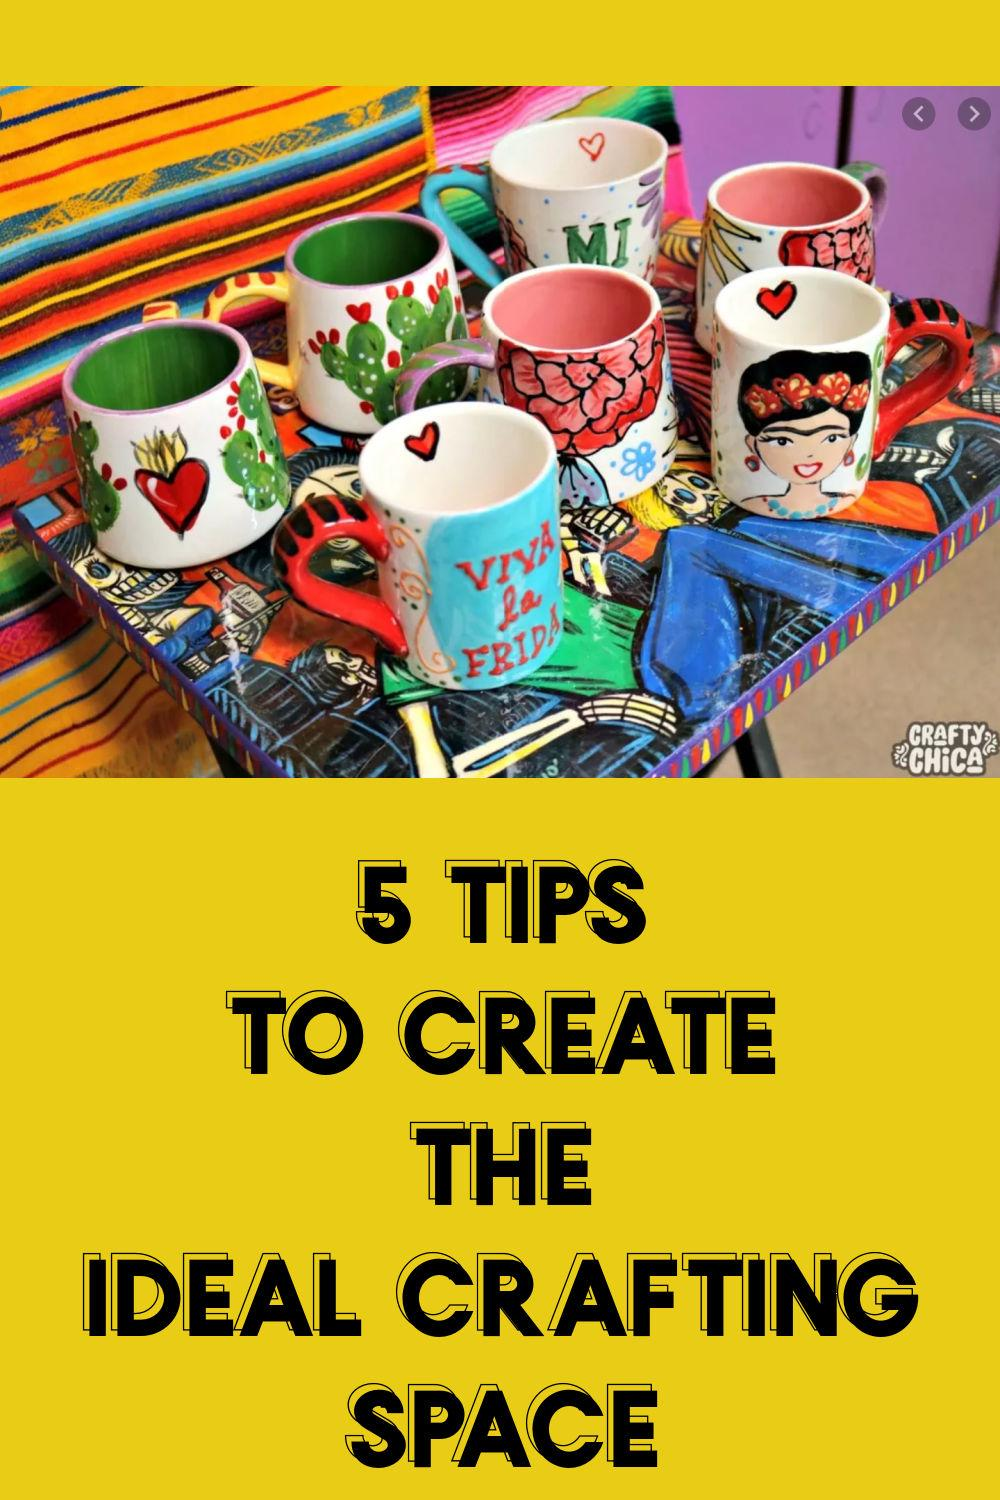 5 Tips to Create the Ideal Crafting Space